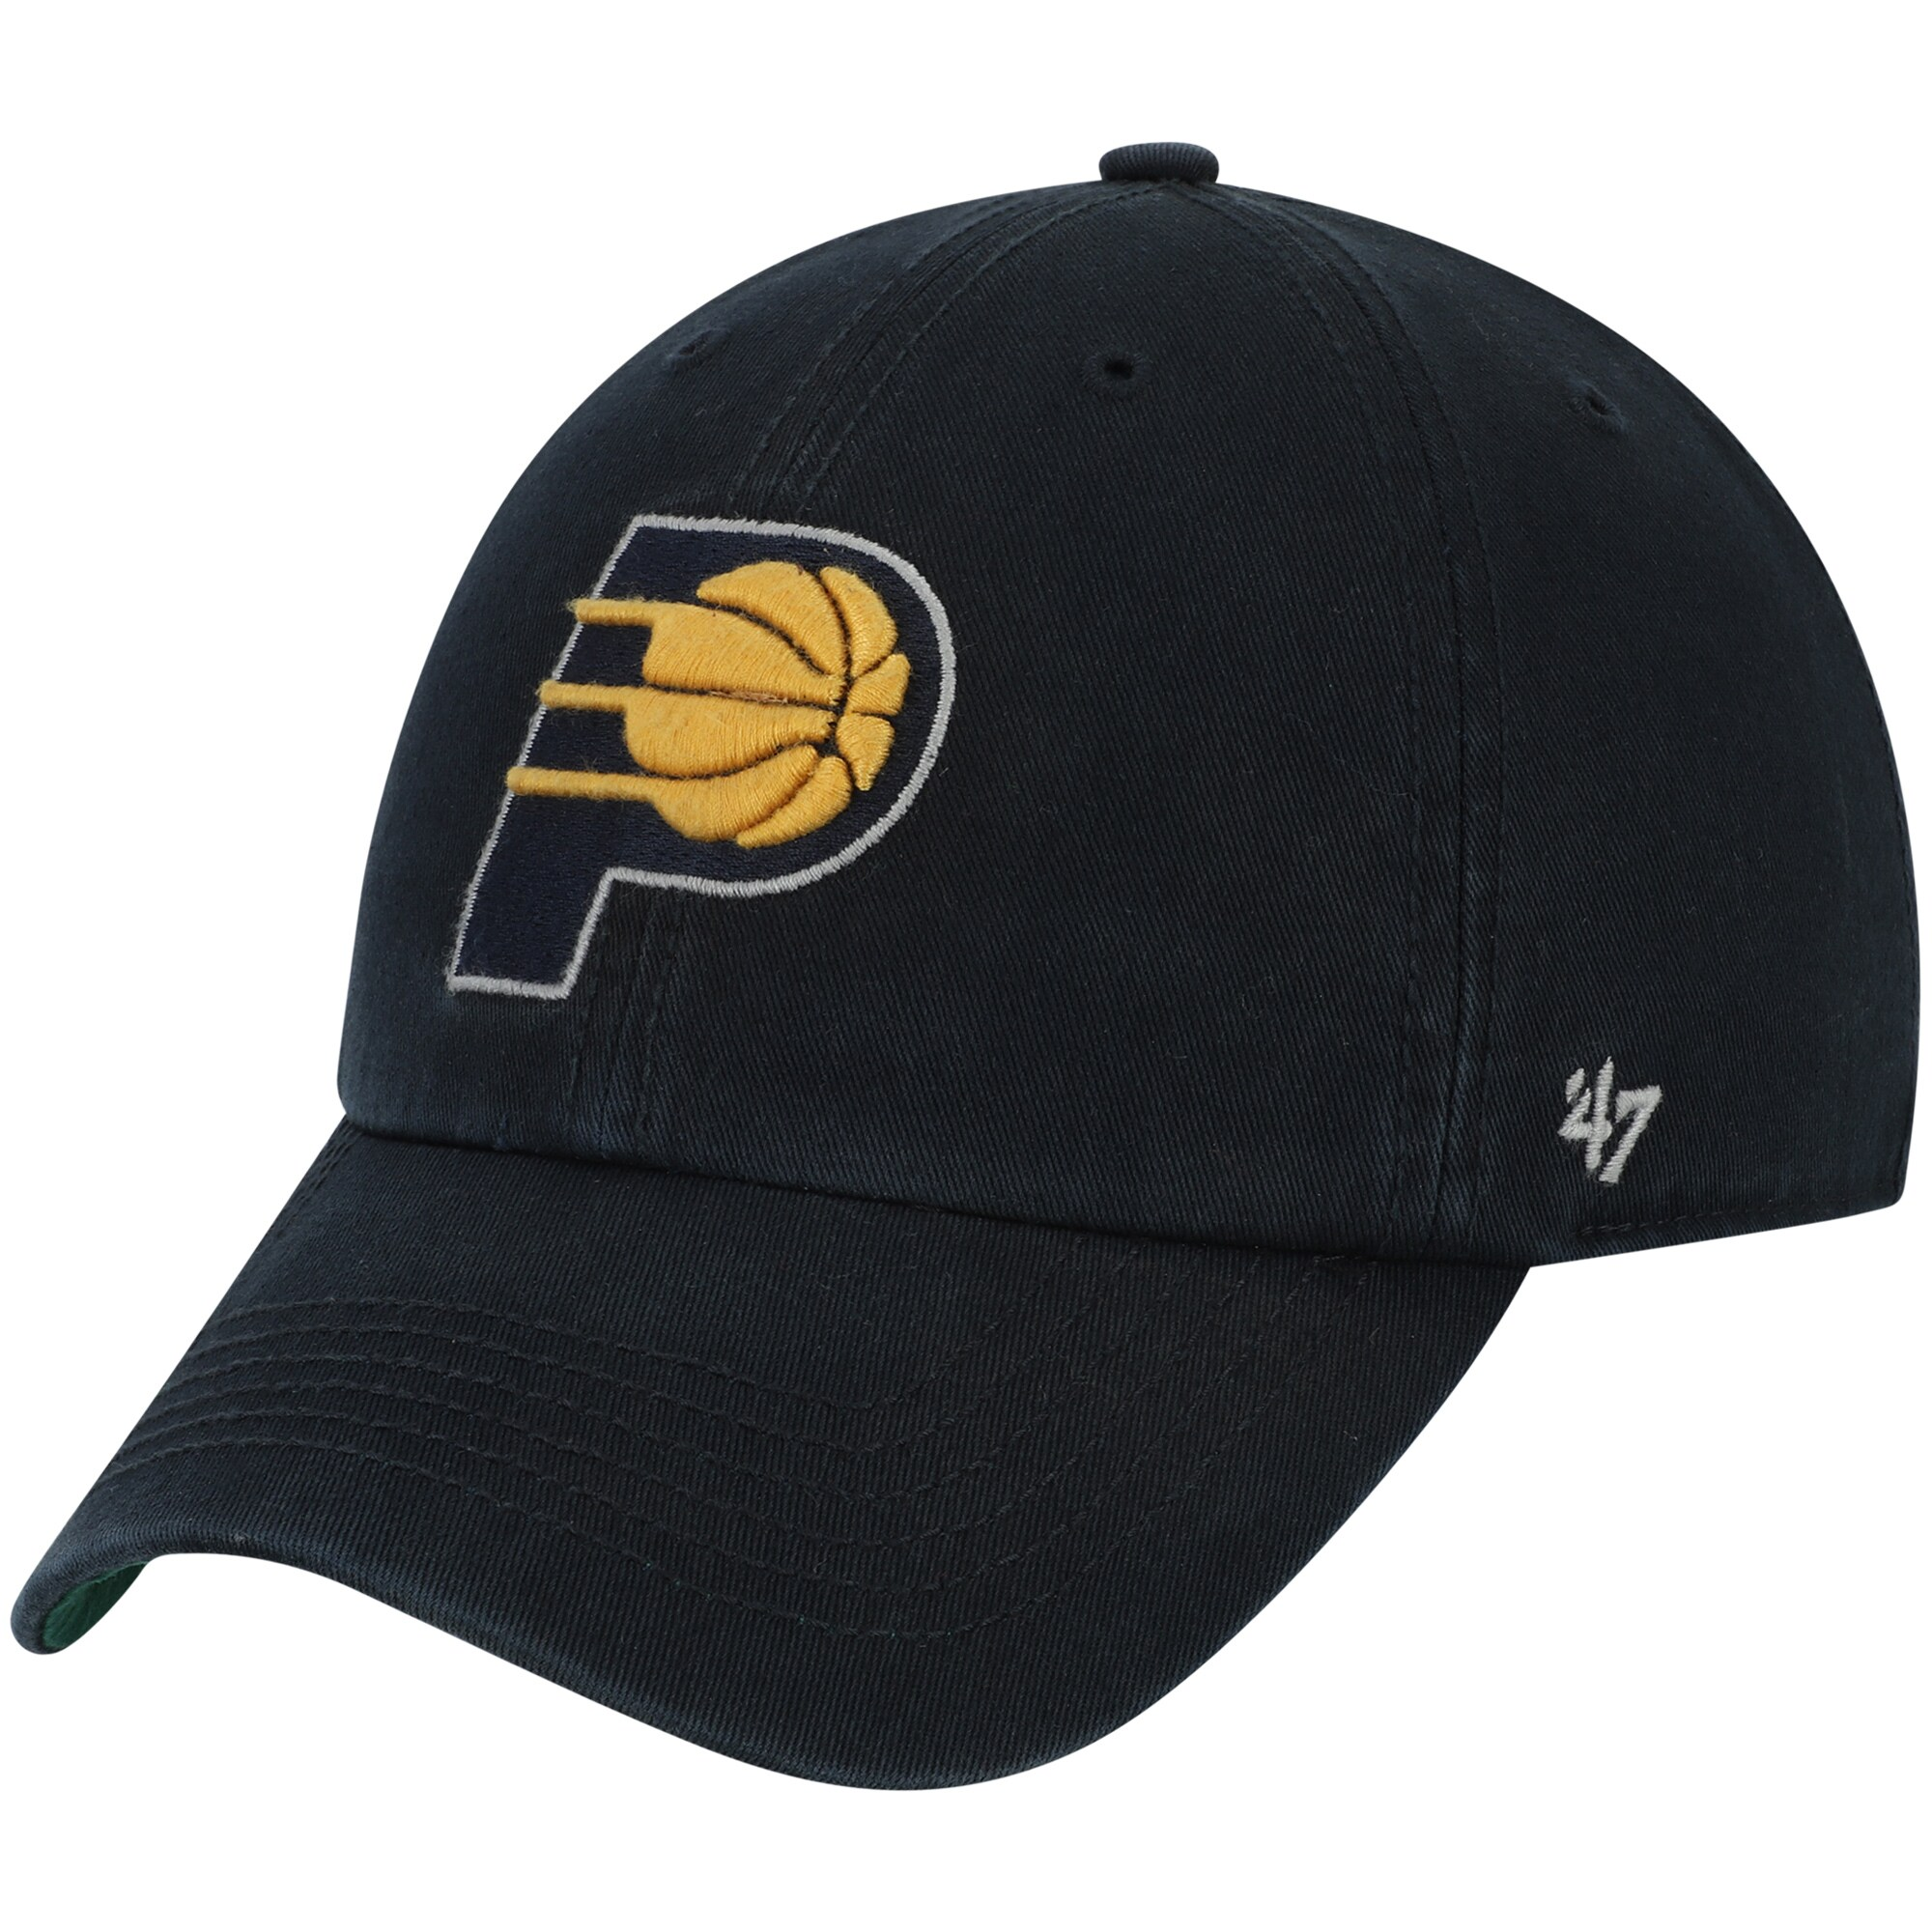 Indiana Pacers '47 Franchise Fitted Hat - Navy